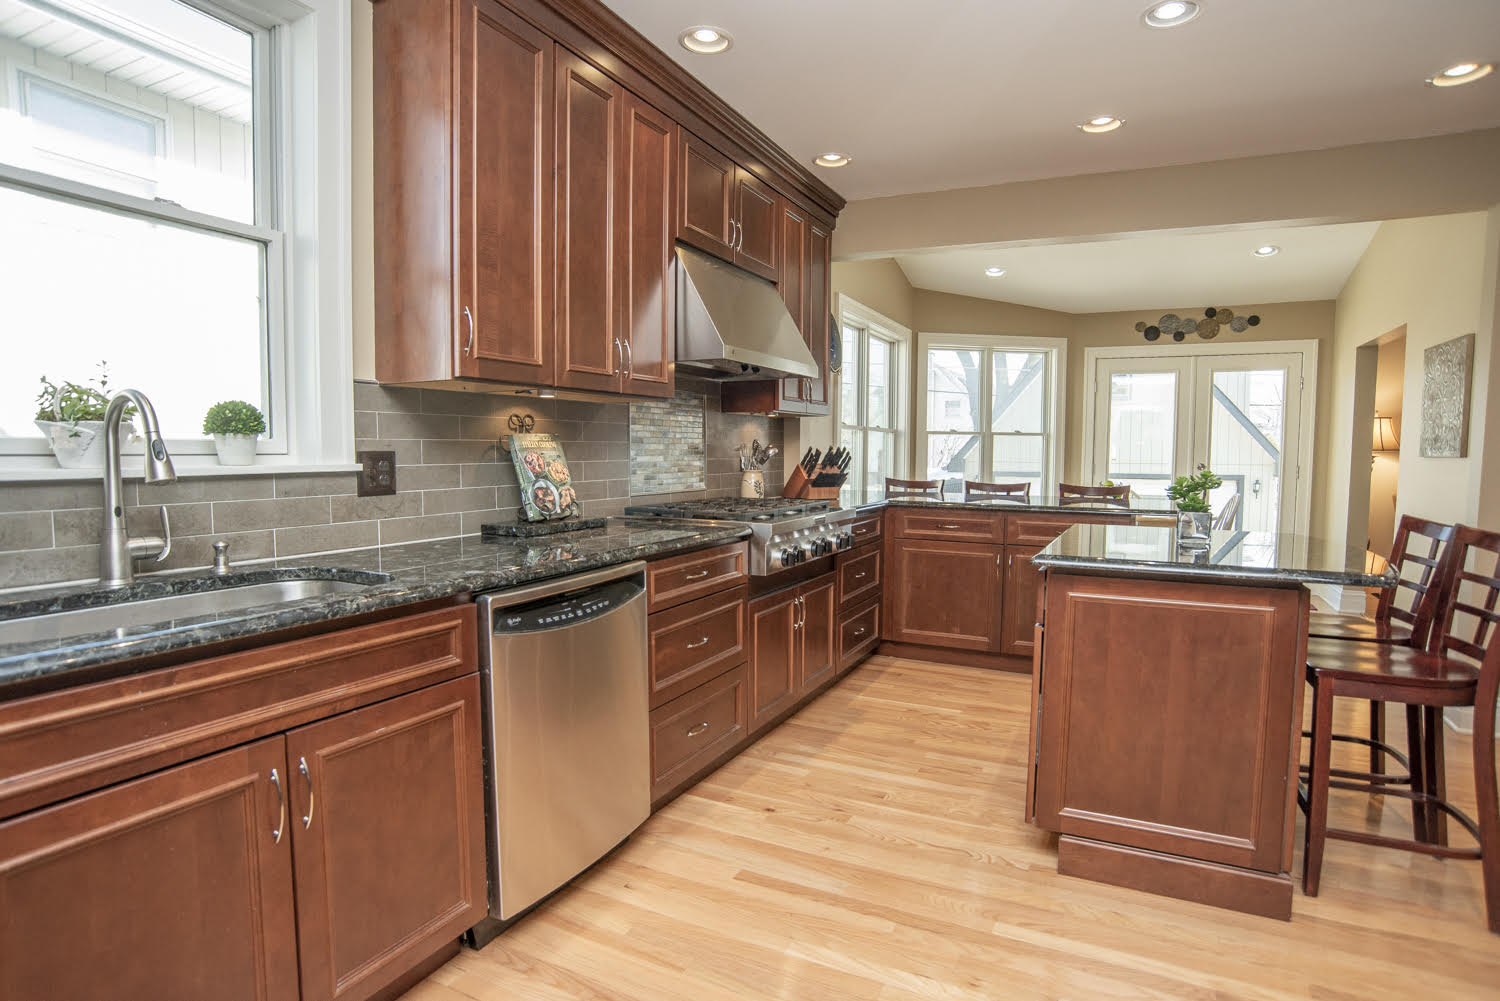 CREATIVE KITCHEN REMODELING IN THIS DOWNTOWN GENEVA IL. HOME BY THE TRAIN STATION. KITCHEN REMODELING IDEAS